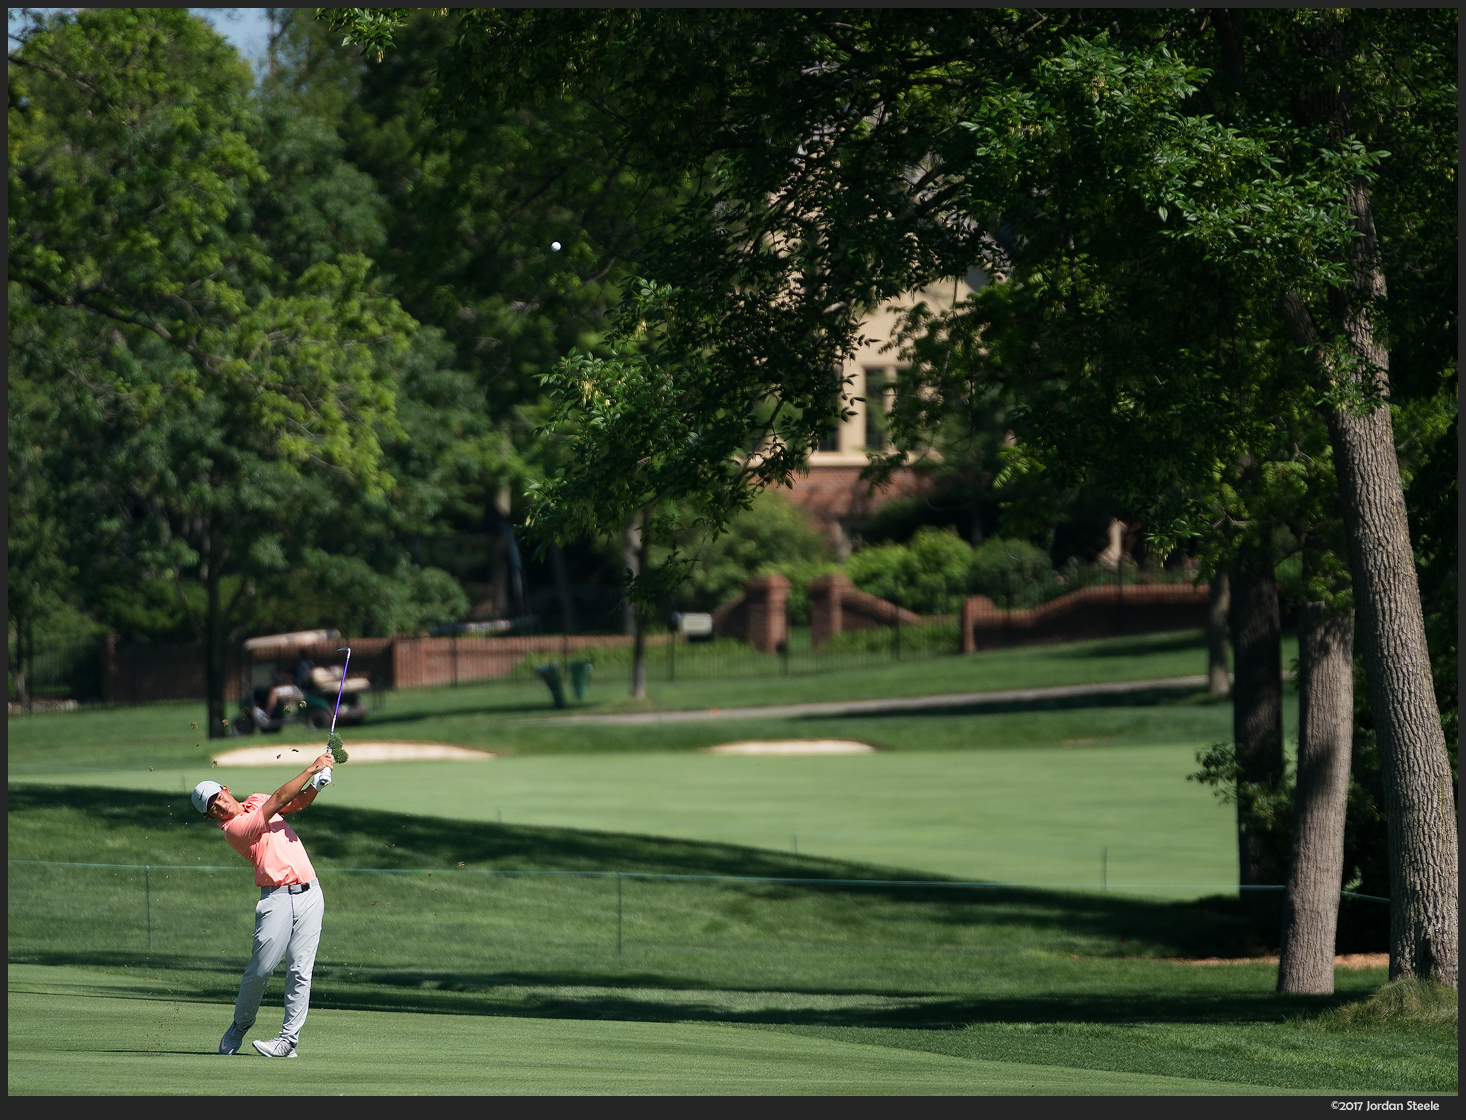 Memorial Tournament - Sony A9 with FE 70-200mm f/2.8 GM + 1.4x TC @ 280mm, f/4, ISO